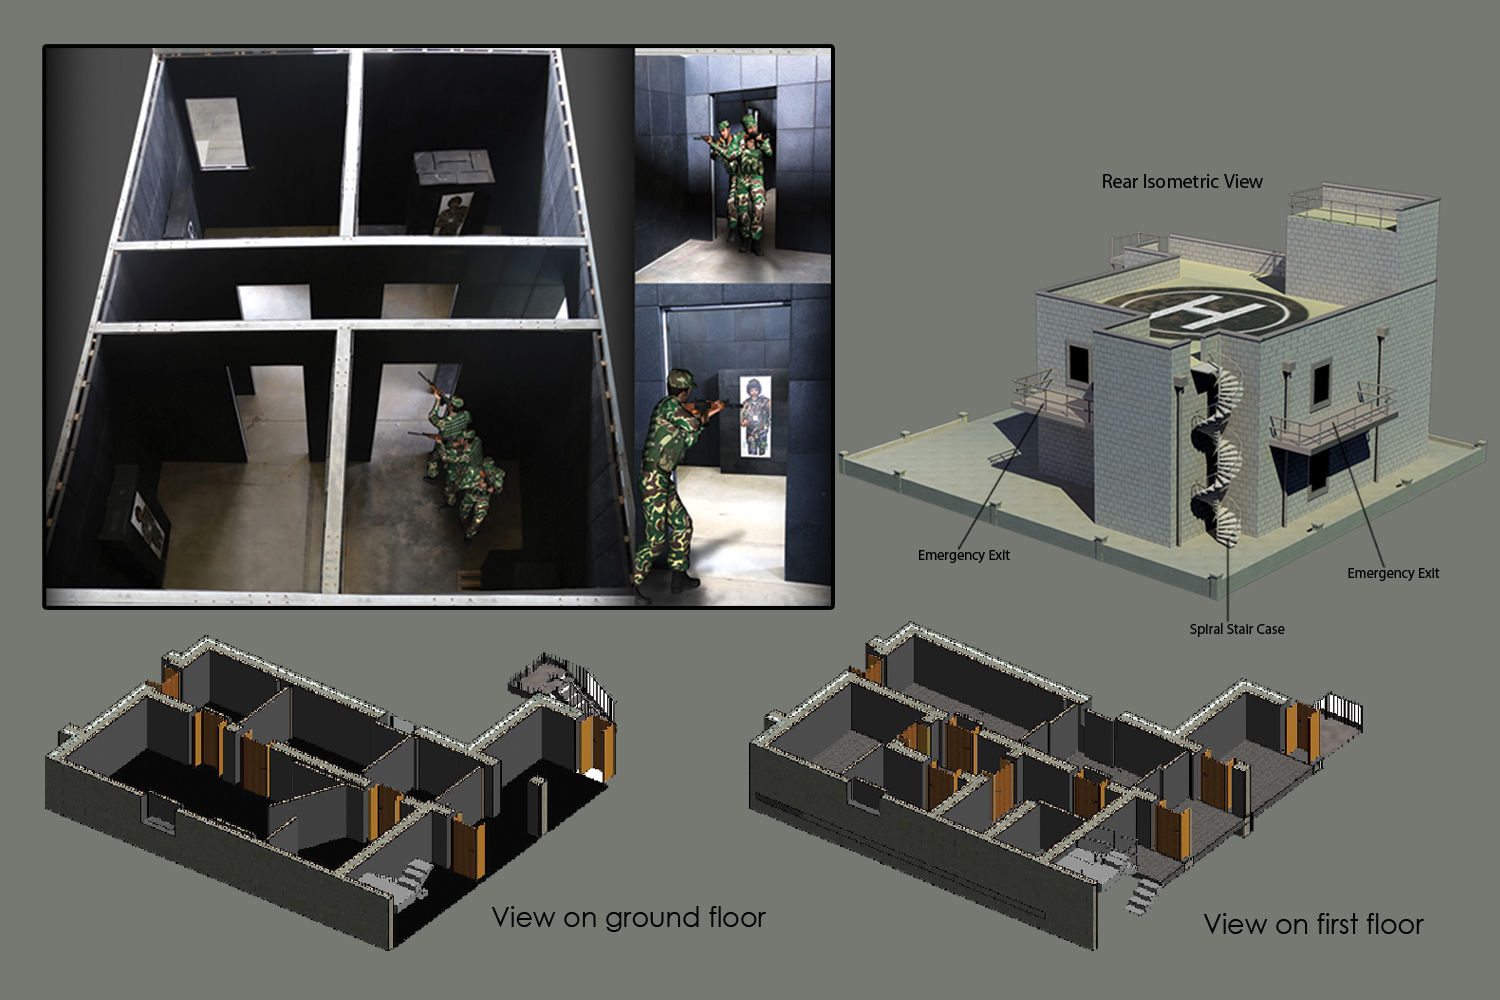 Shoot House for Live and Simulated Indoor Tactical Training